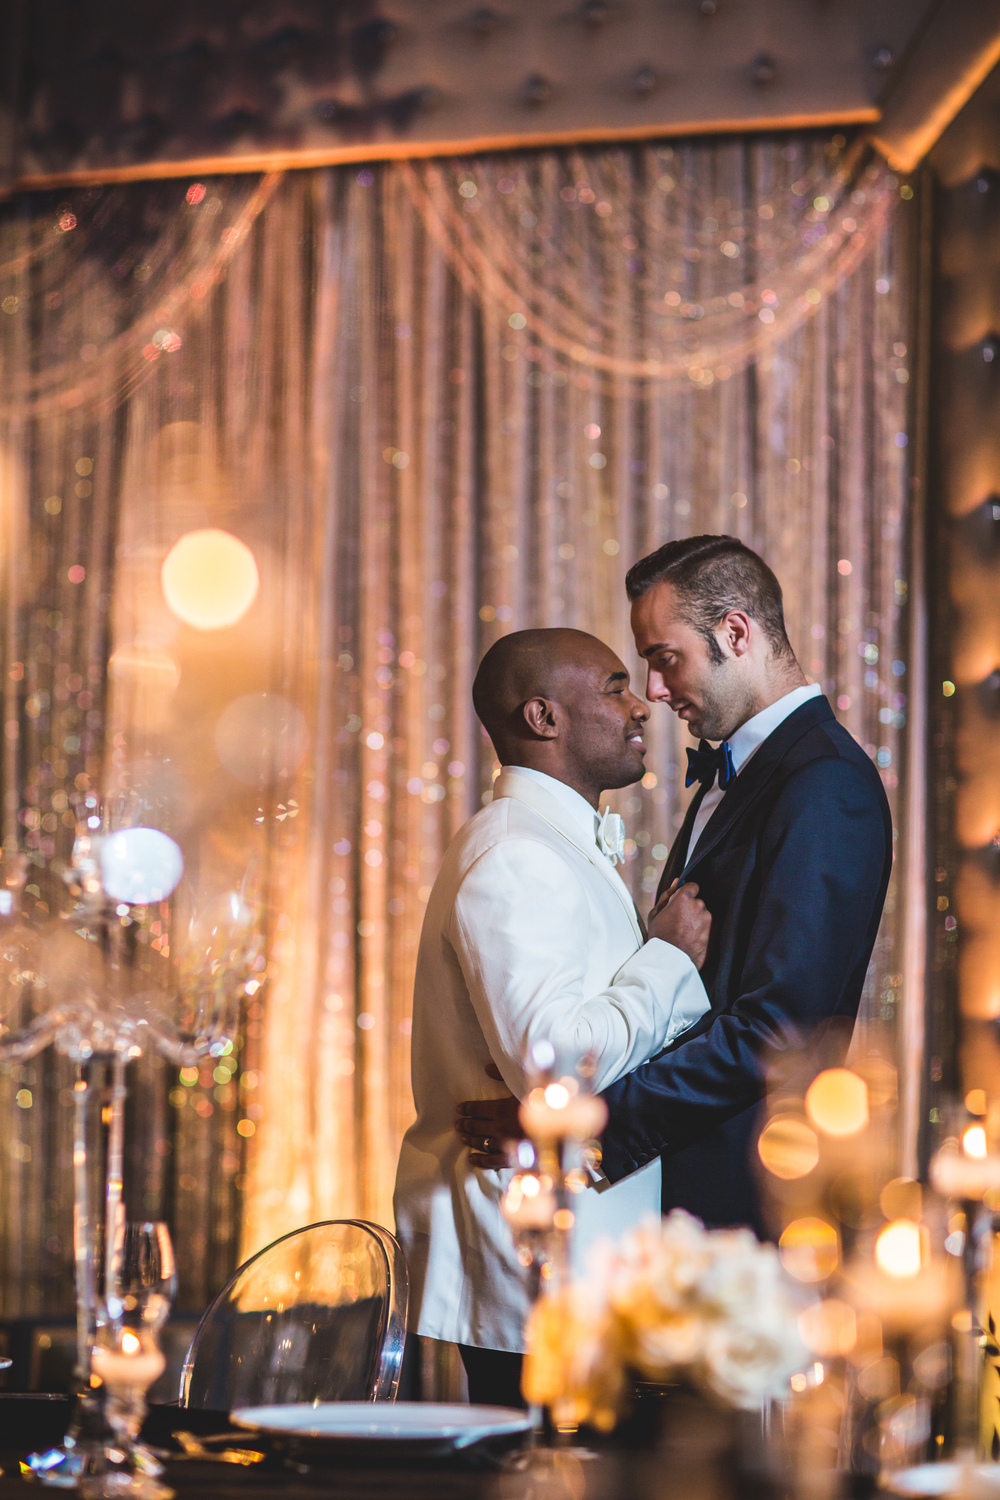 One Love at the Ritz Carlton | Orlando Gay Wedding Photographer